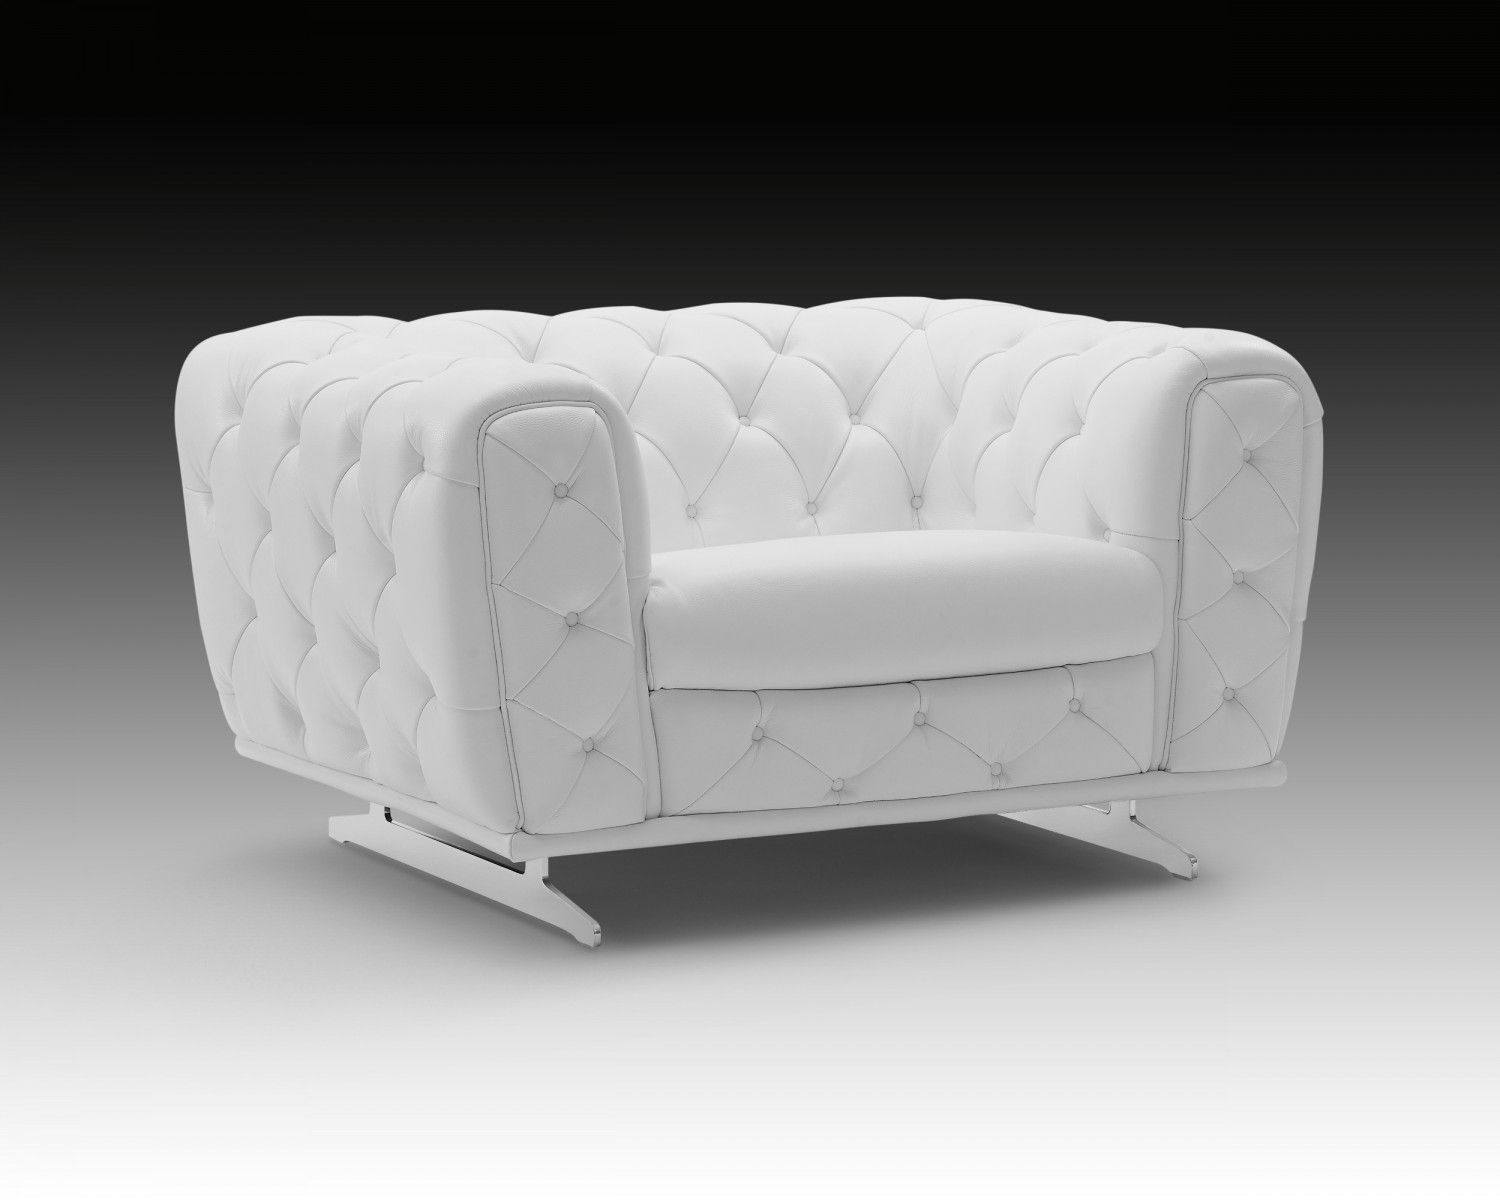 Ellie leather chair in snow white leather by creative furniture